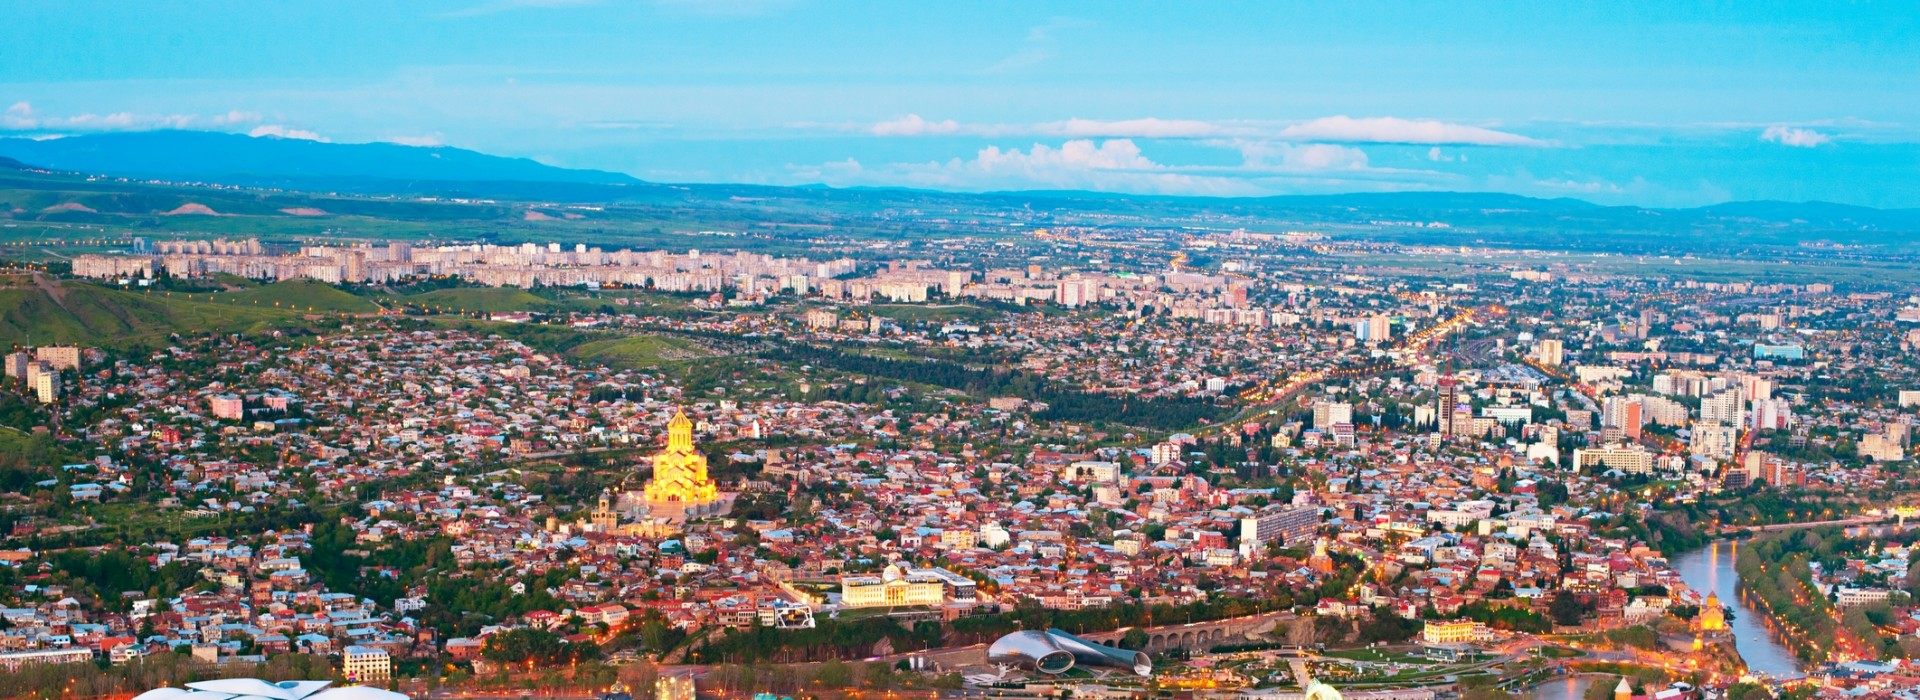 Aerial view of Tbilisi city